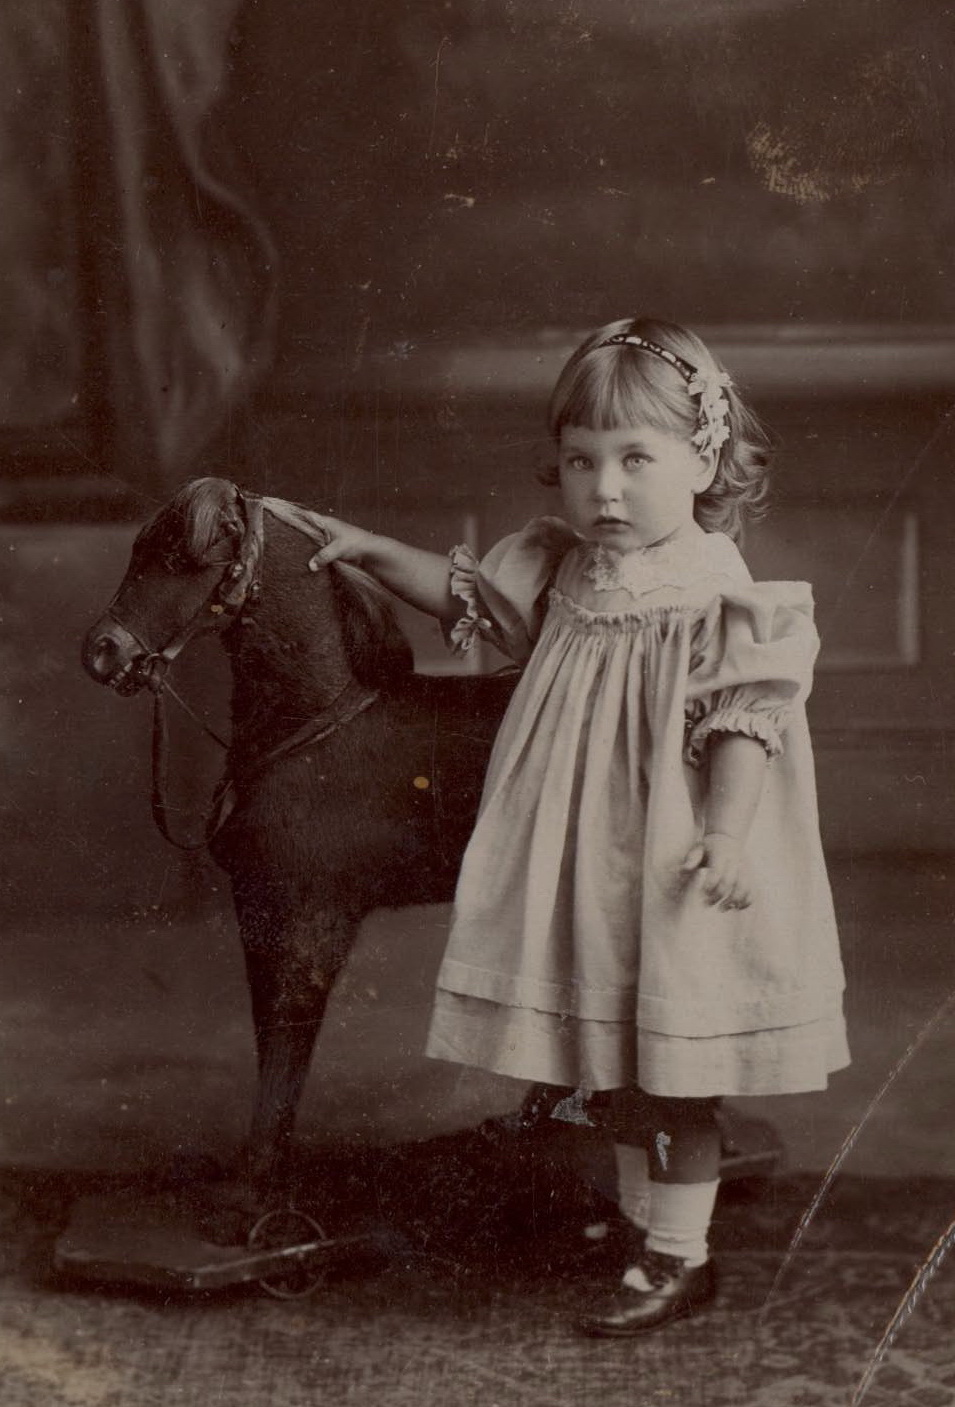 Eva Dance as a young child